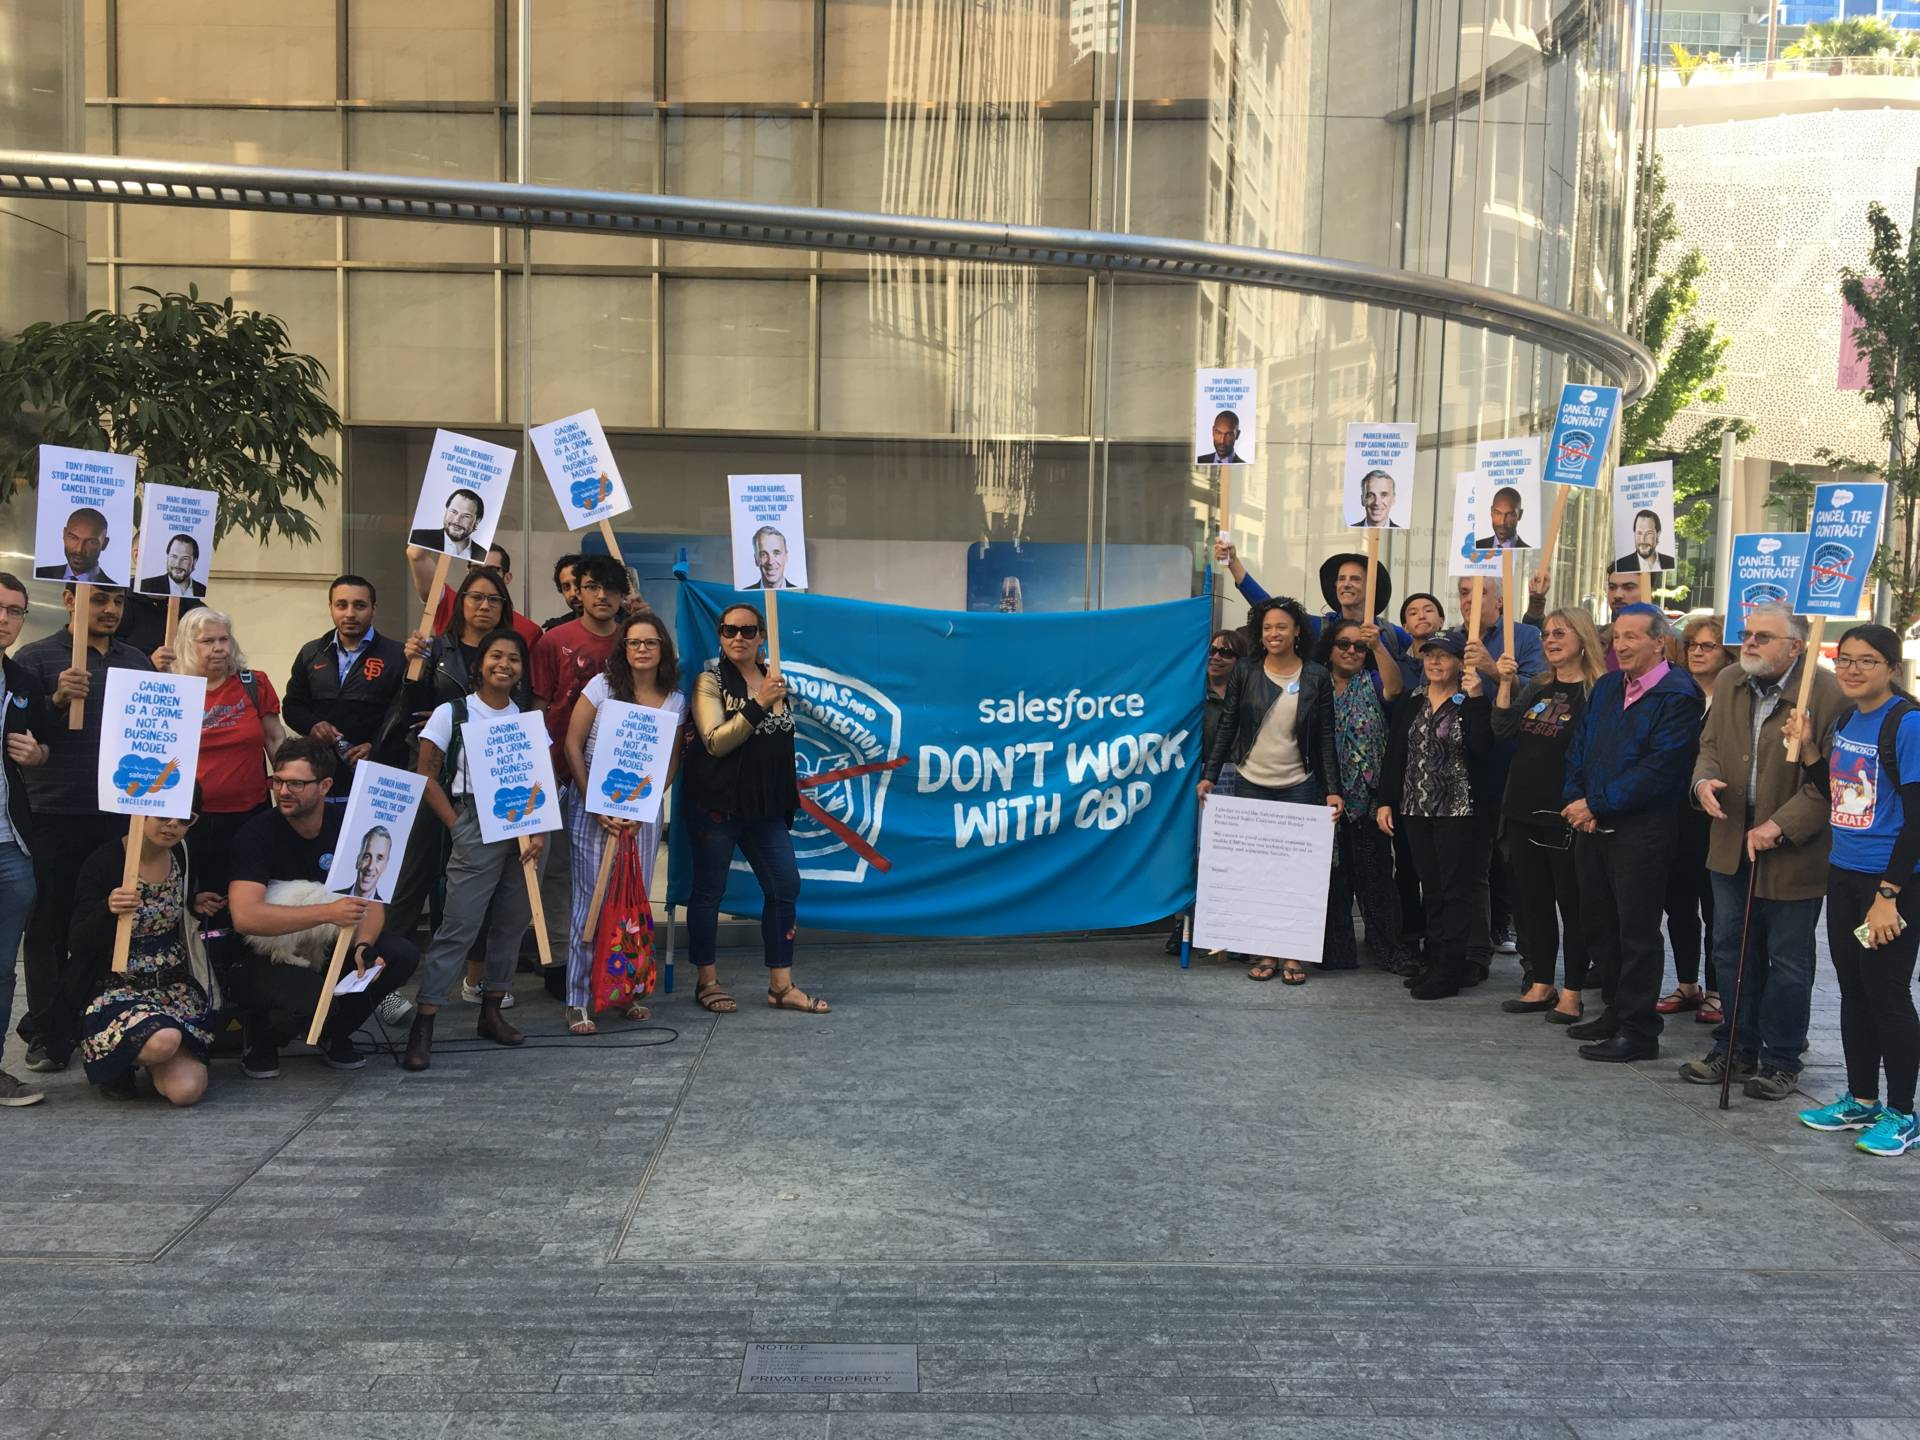 Those active in the Tech Workers Coalition came out to support Salesforce employees who are speaking out against the company. Sam Harnett/KQED